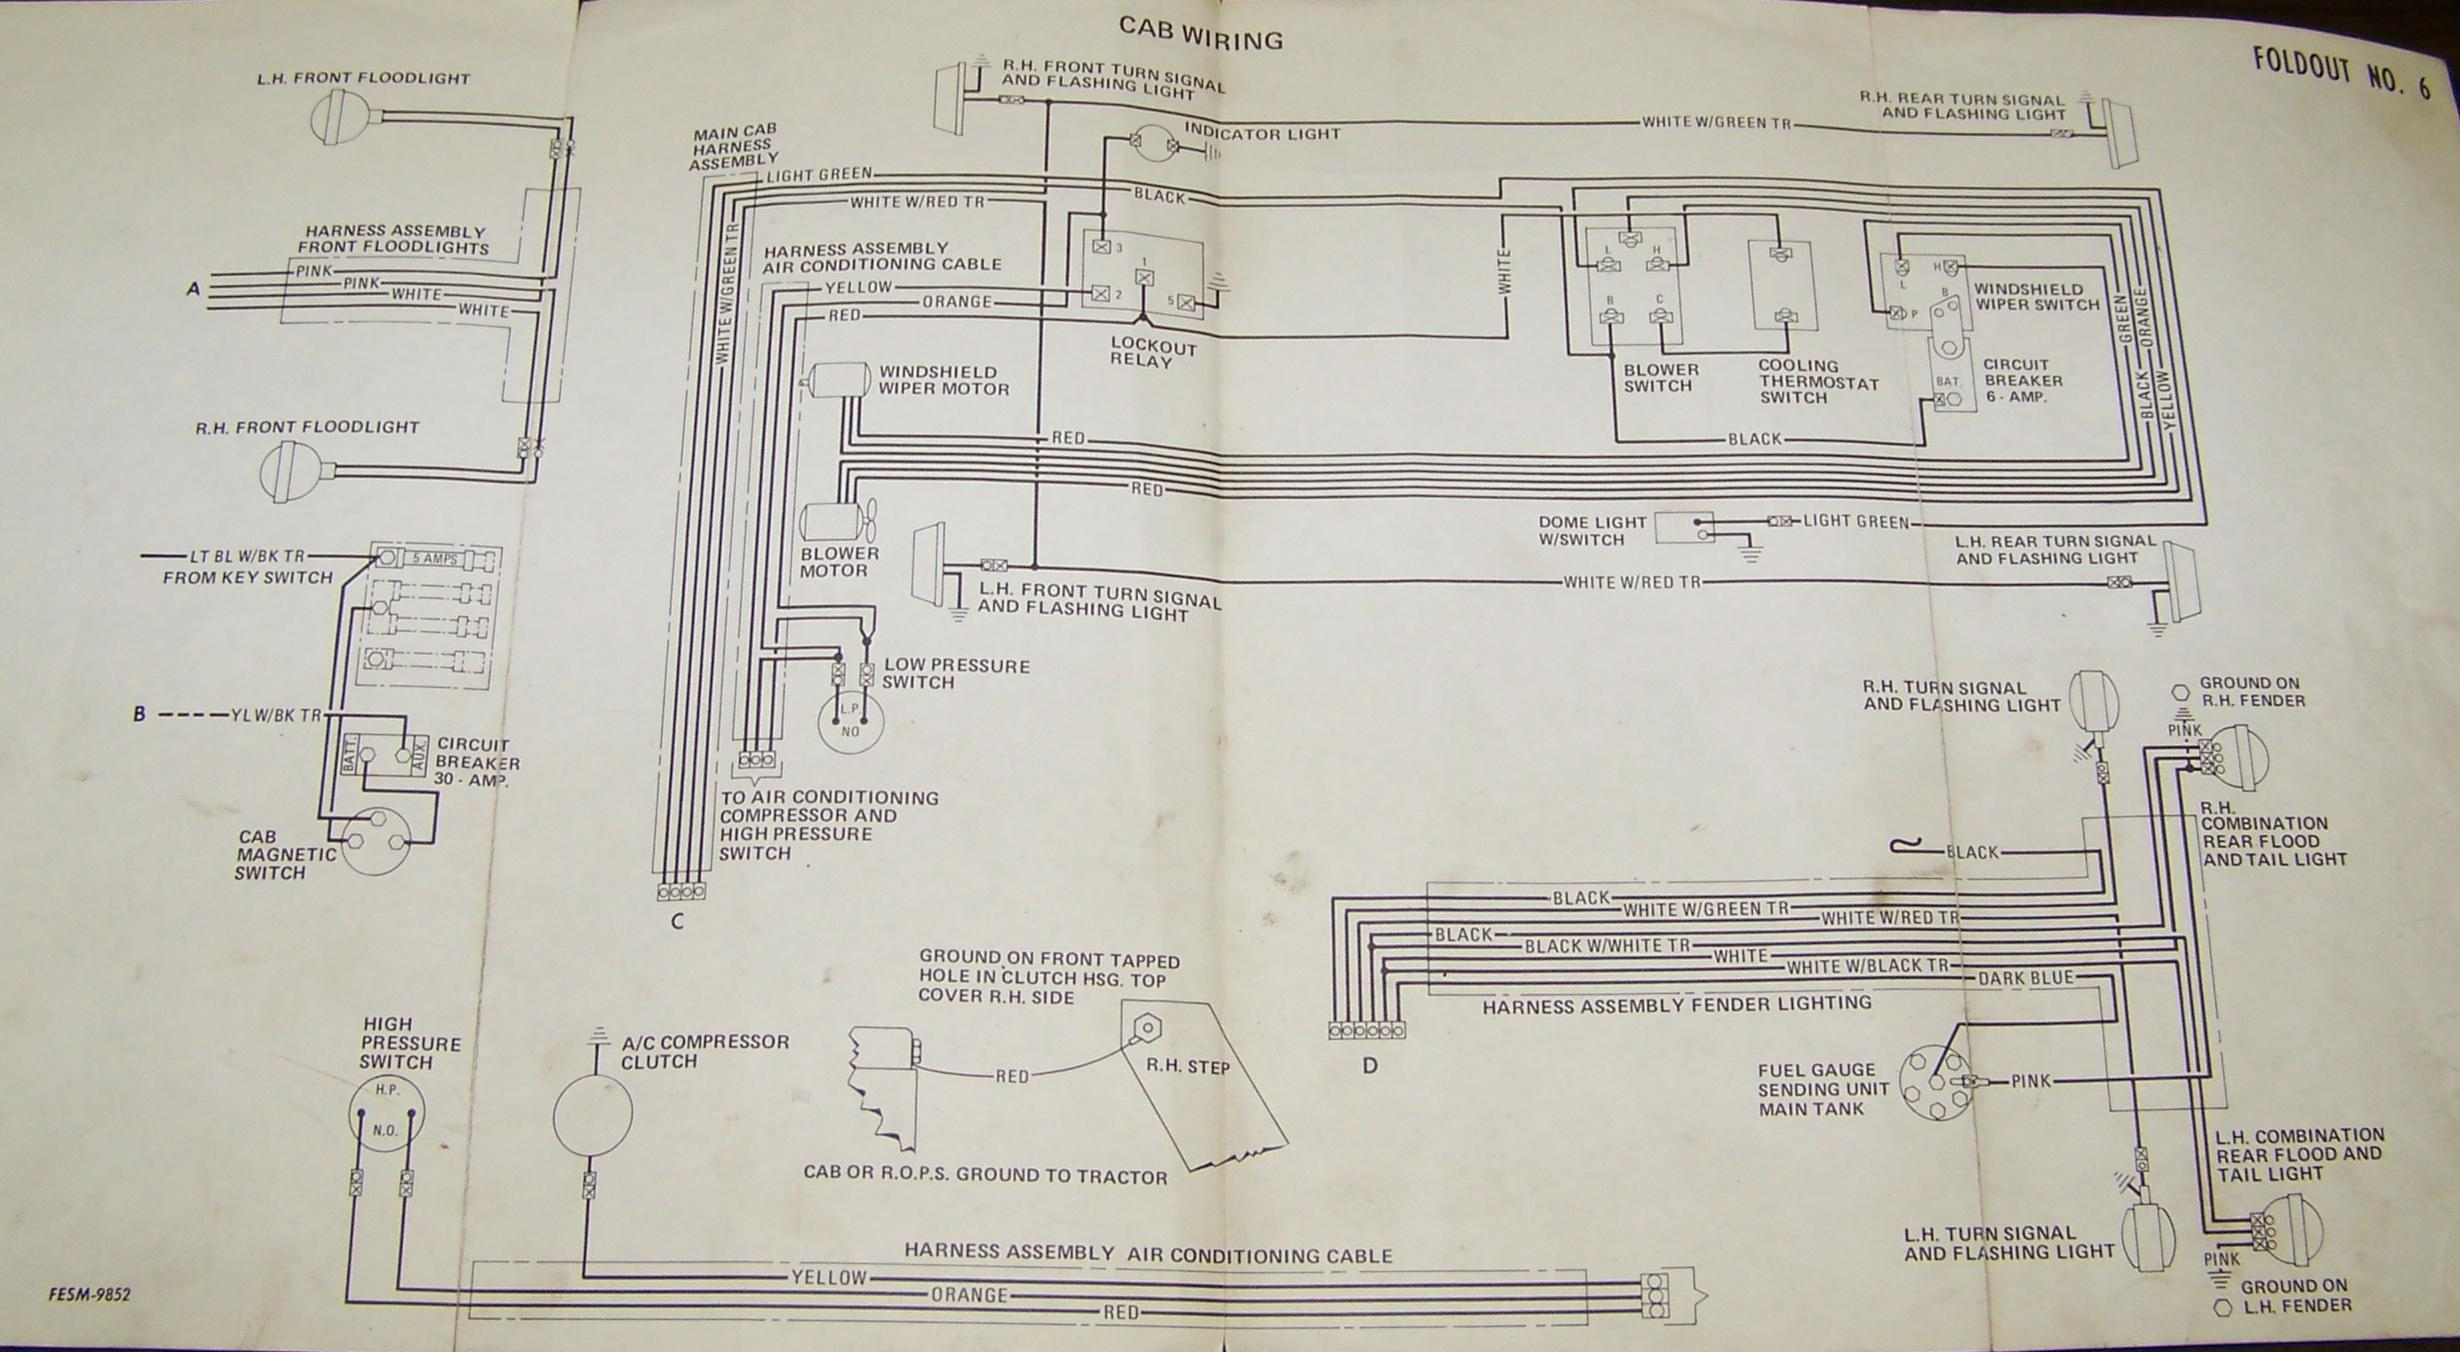 86series6 carter & gruenewald co inc ih farmall tractor electrical international tractor wiring diagram at mifinder.co